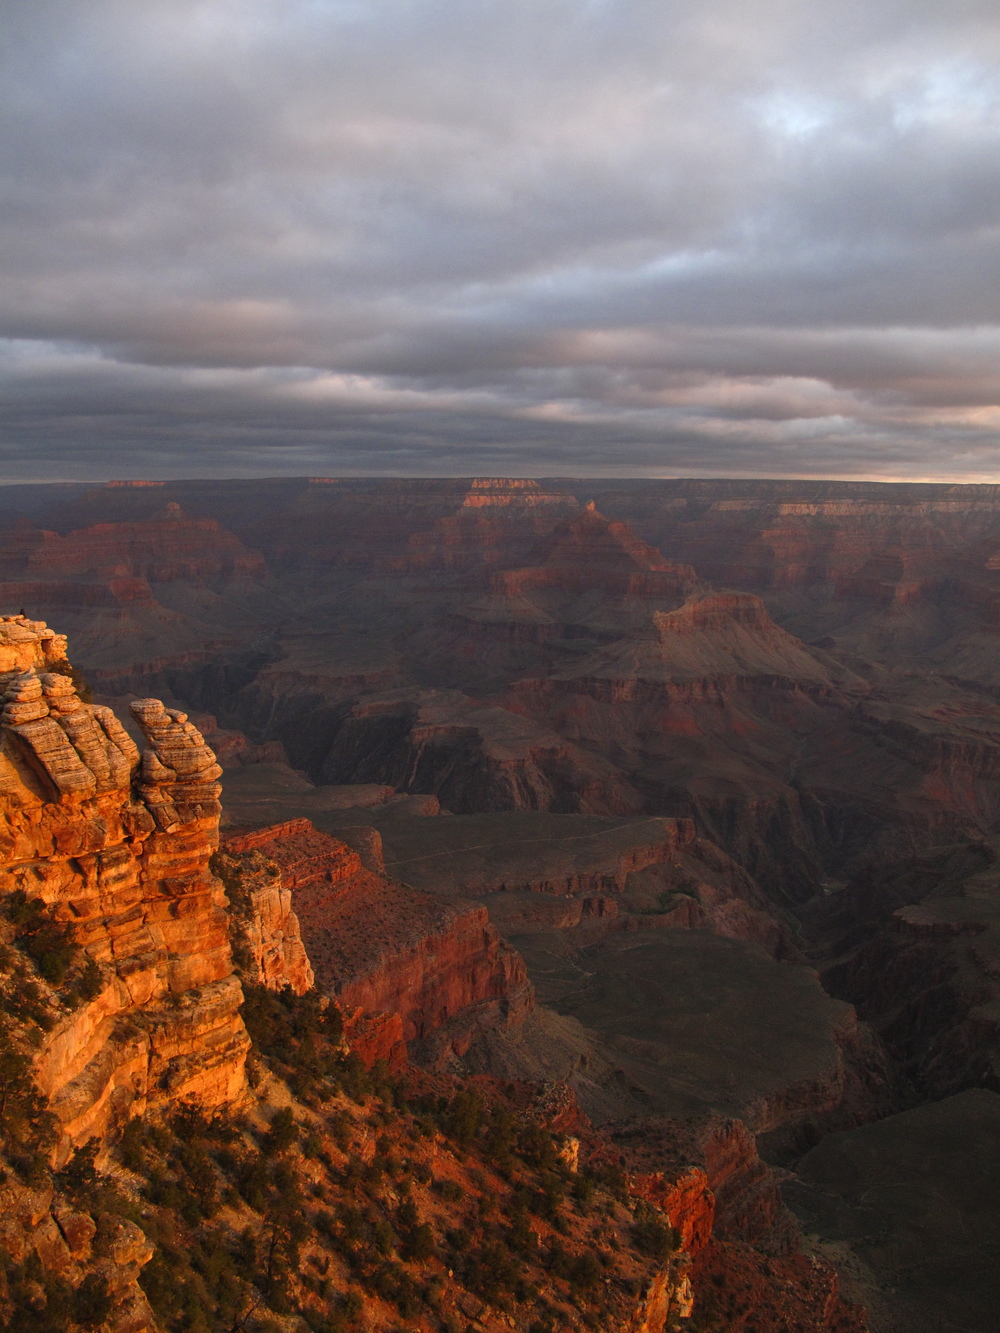 Red walls of the Grand Canyon at sunset.